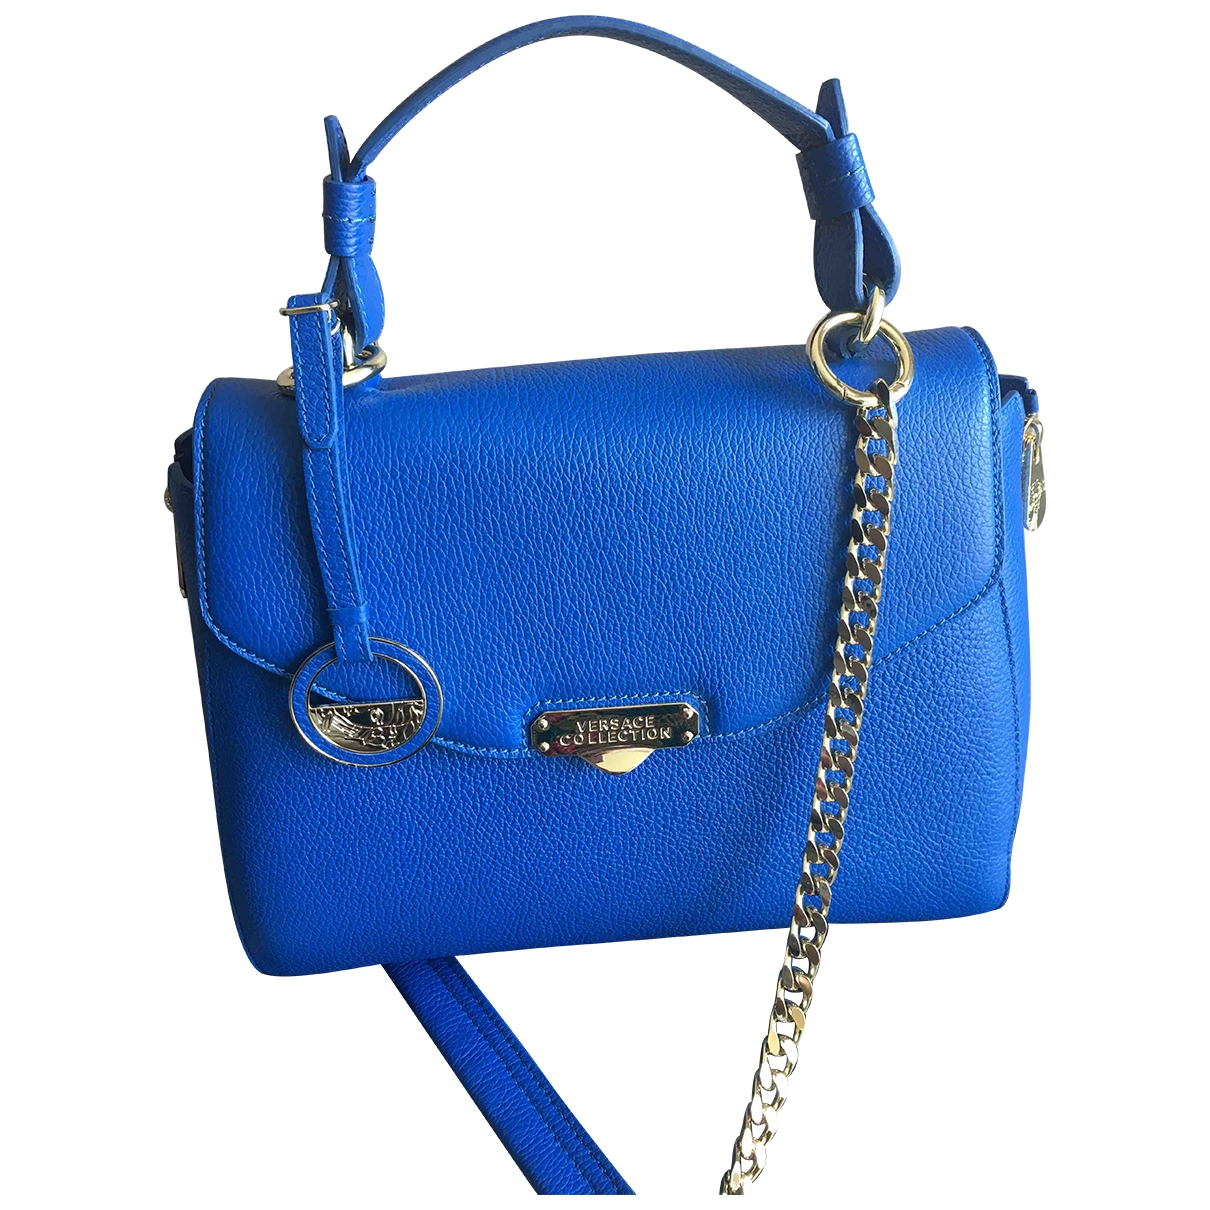 Versace \N Blue Leather handbag for Women \N